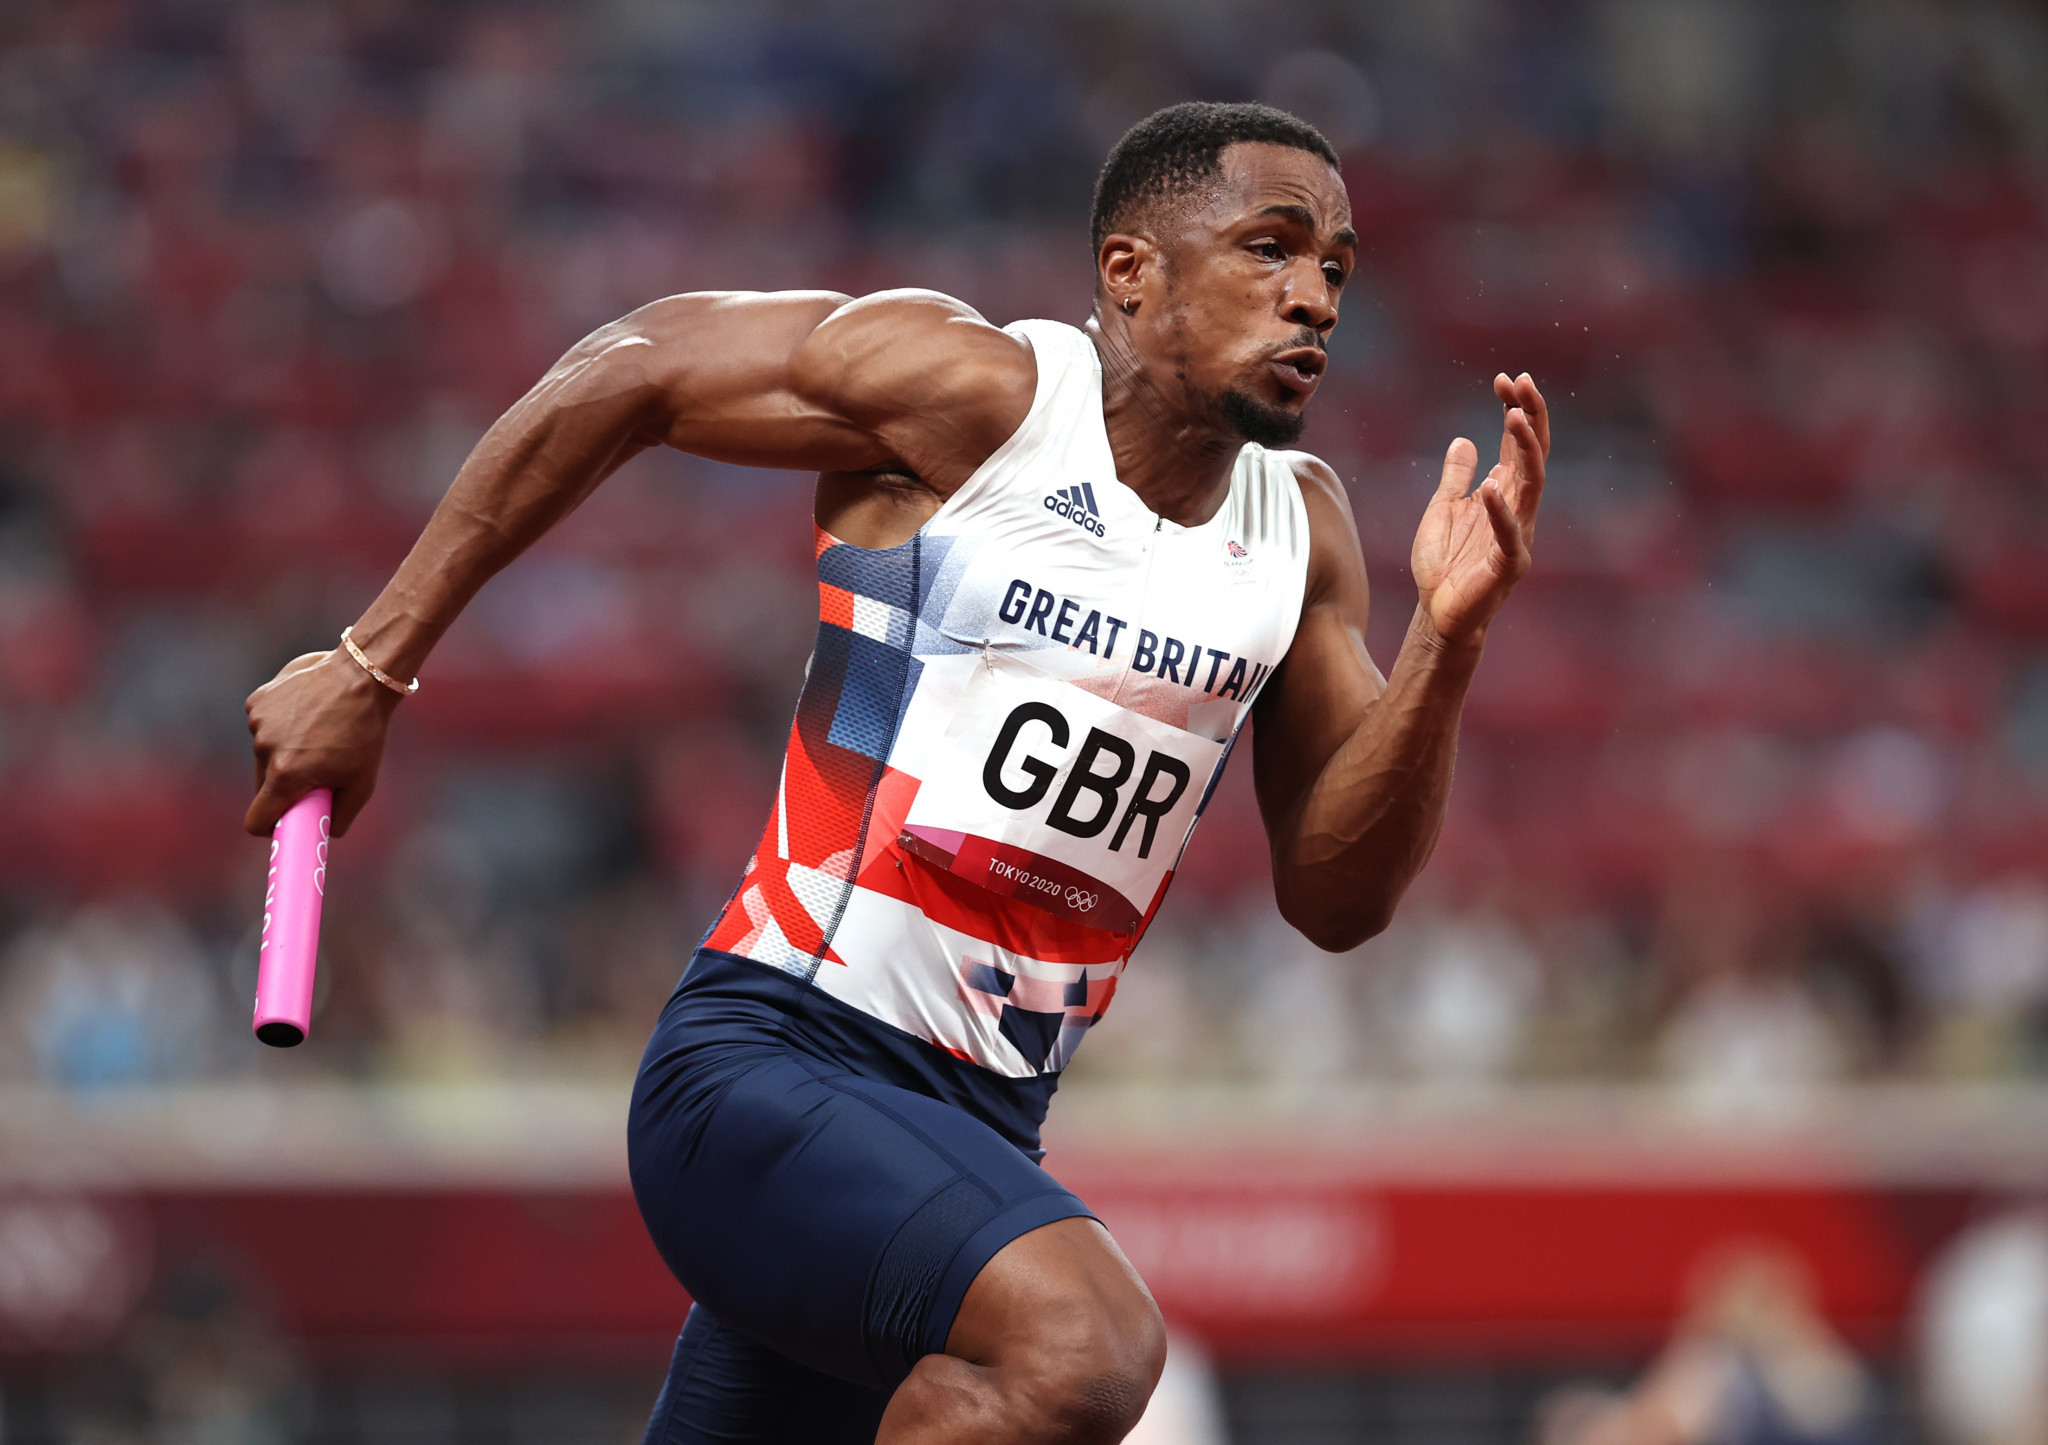 British Olympic relay silver medal could be stripped as Ujah given provisional doping suspension